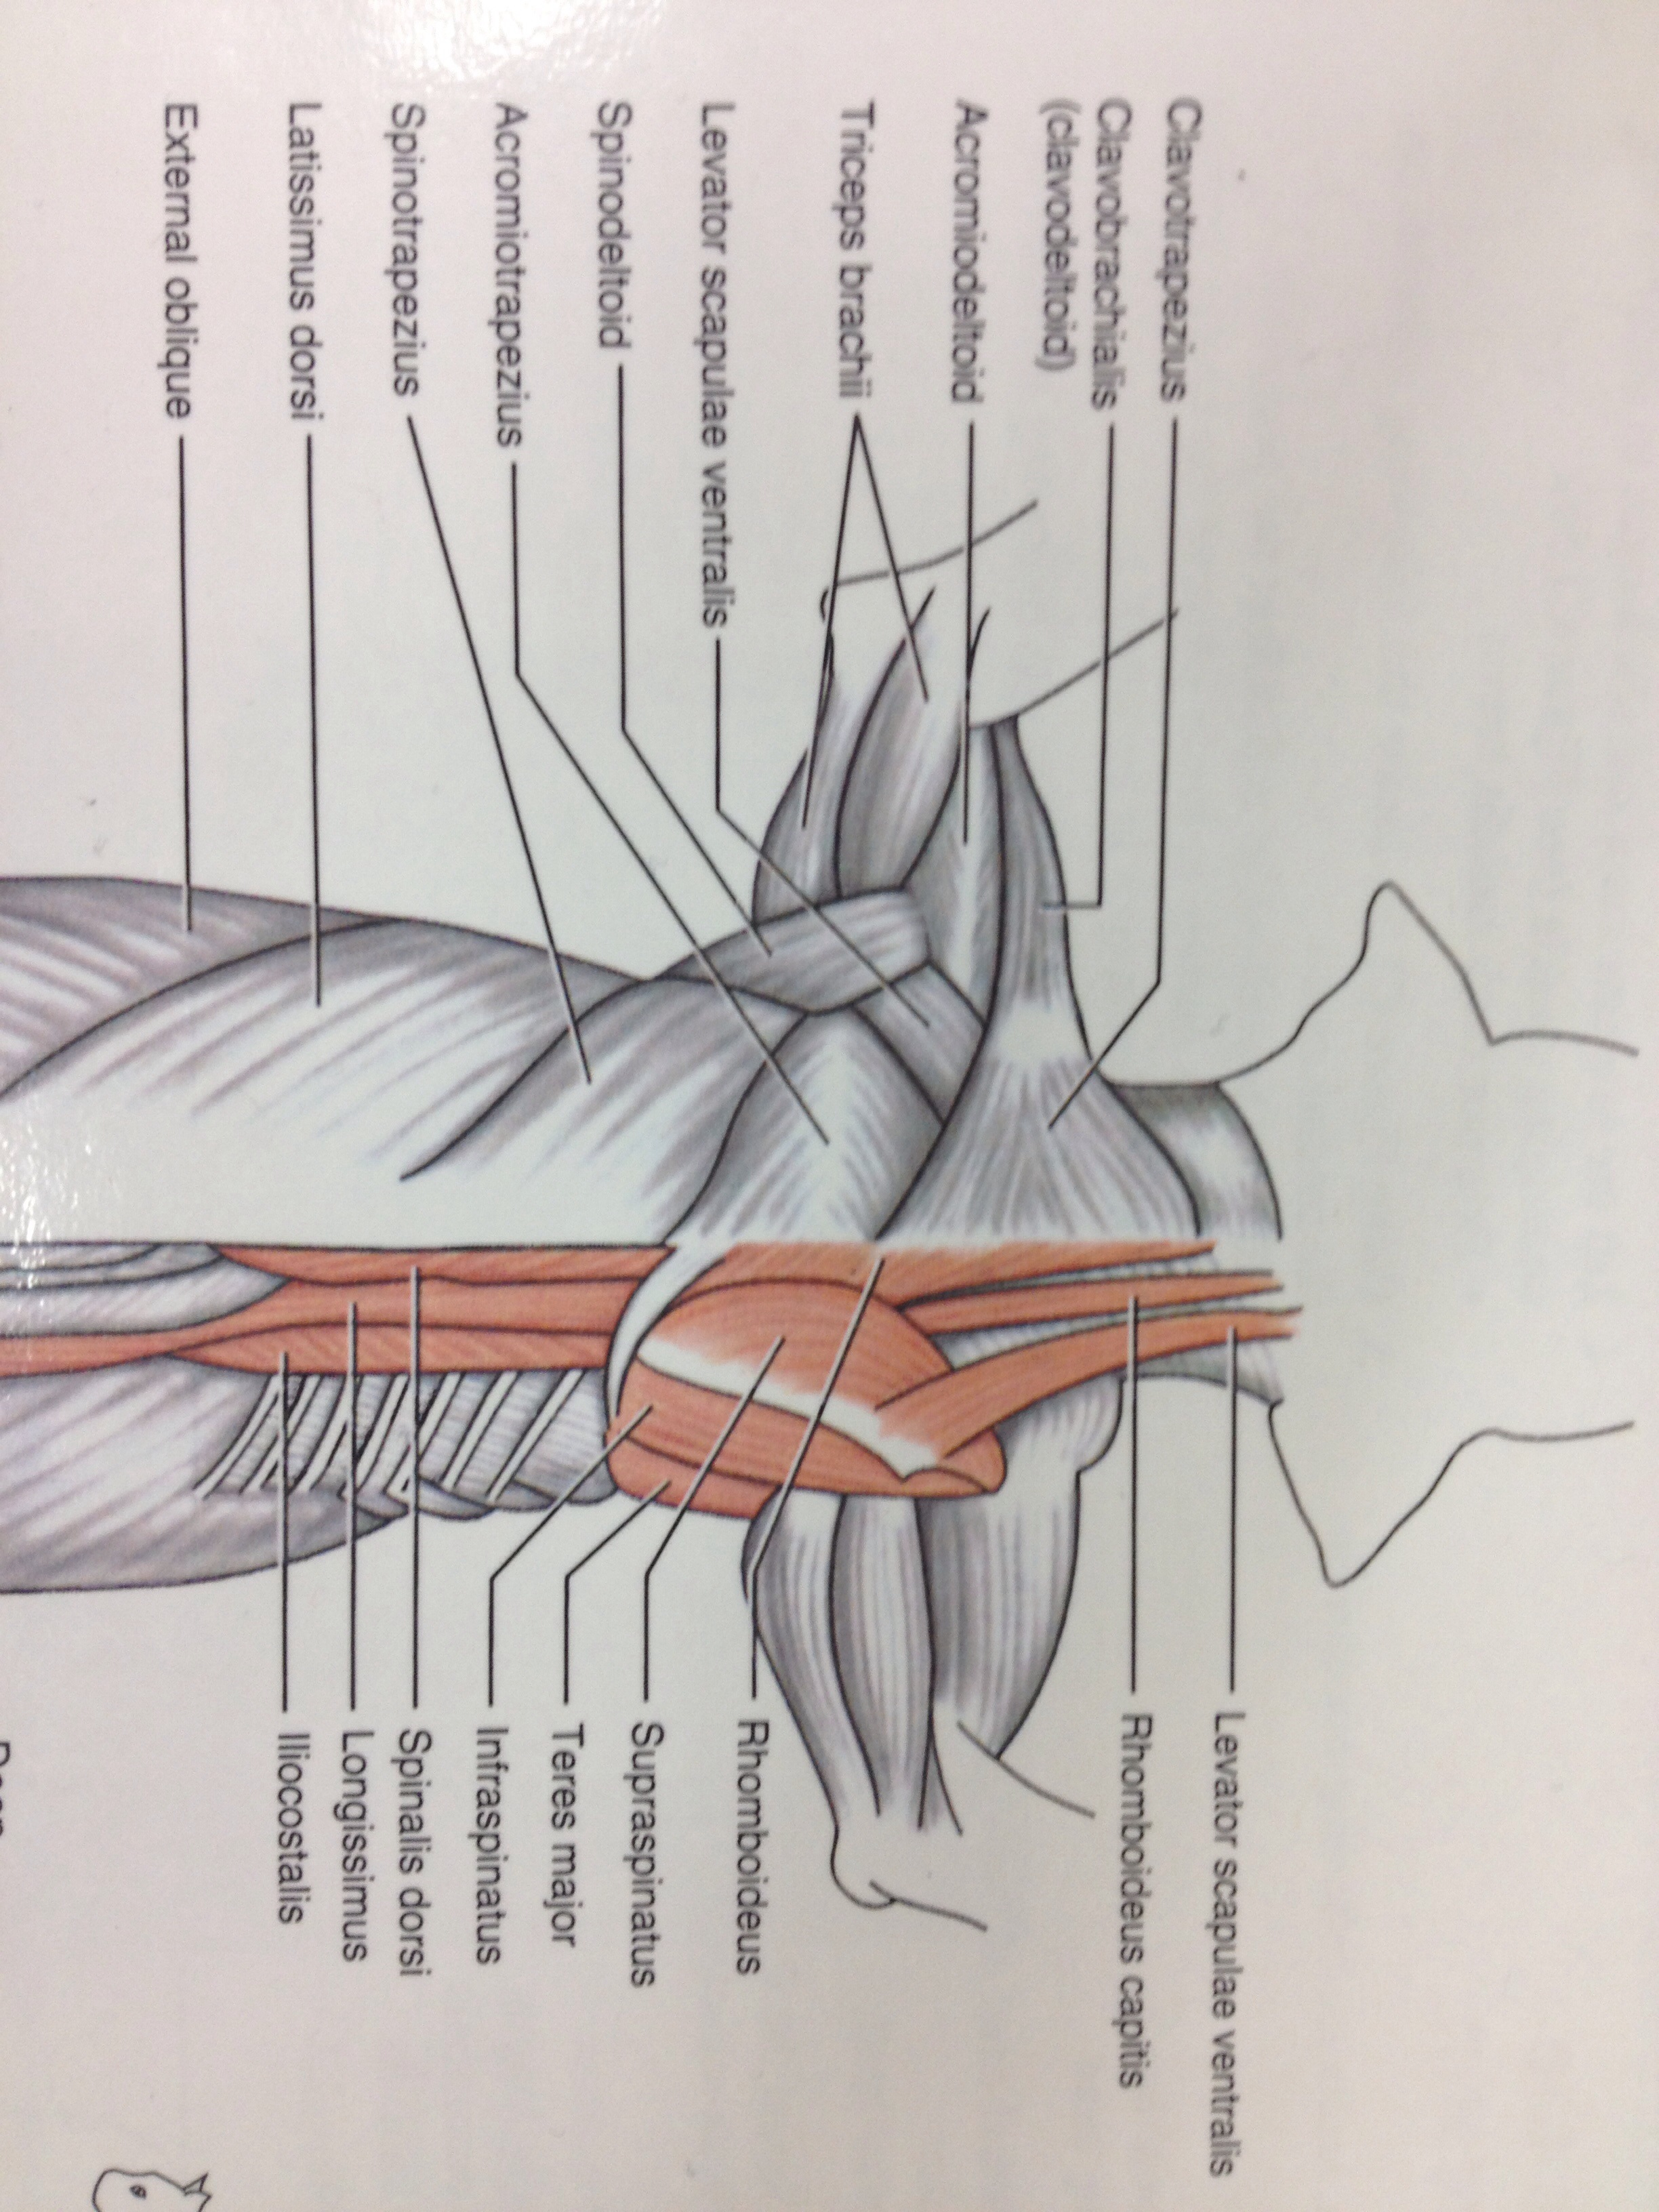 cat dissection muscle diagram back rj45 wiring crossover straight and muscles of the forearm arm shoulder